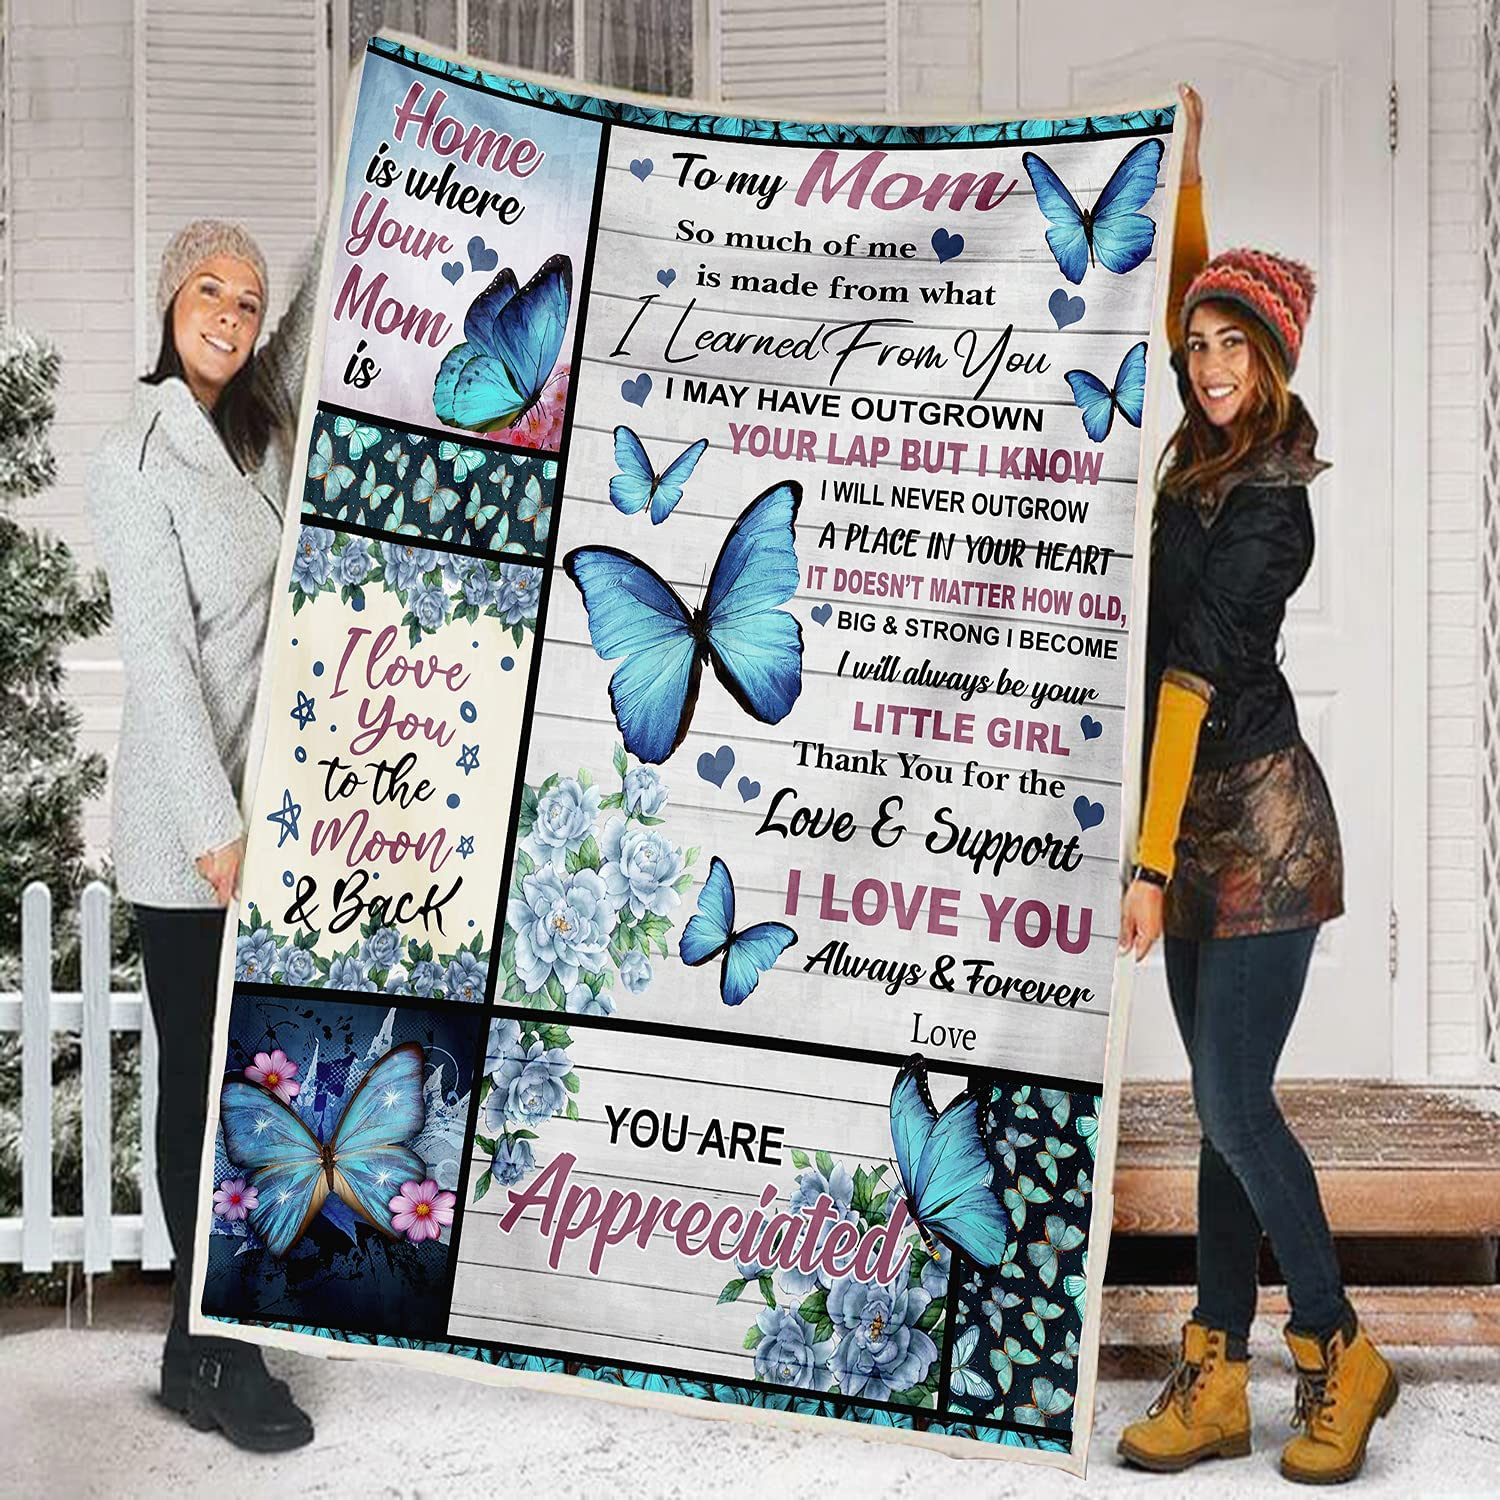 I Will Always be Spring new work Your Little free shipping Girl You Thank The Love for Su and